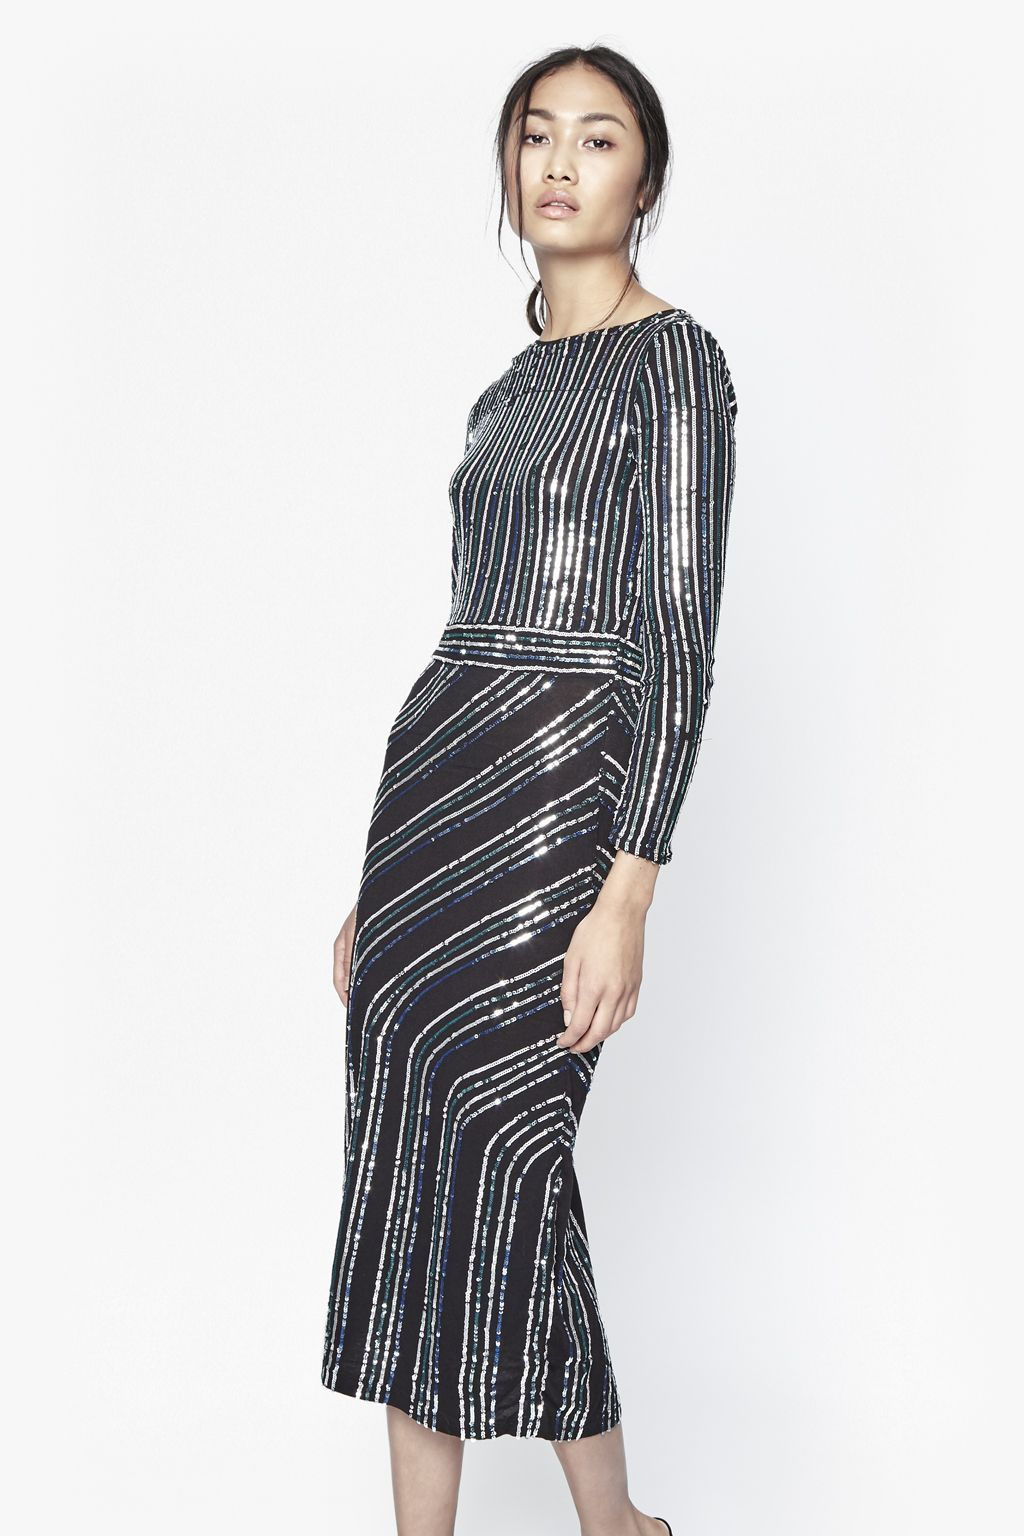 Ulue ucliue fitted longsleeved maxi dress with sequin embellishment